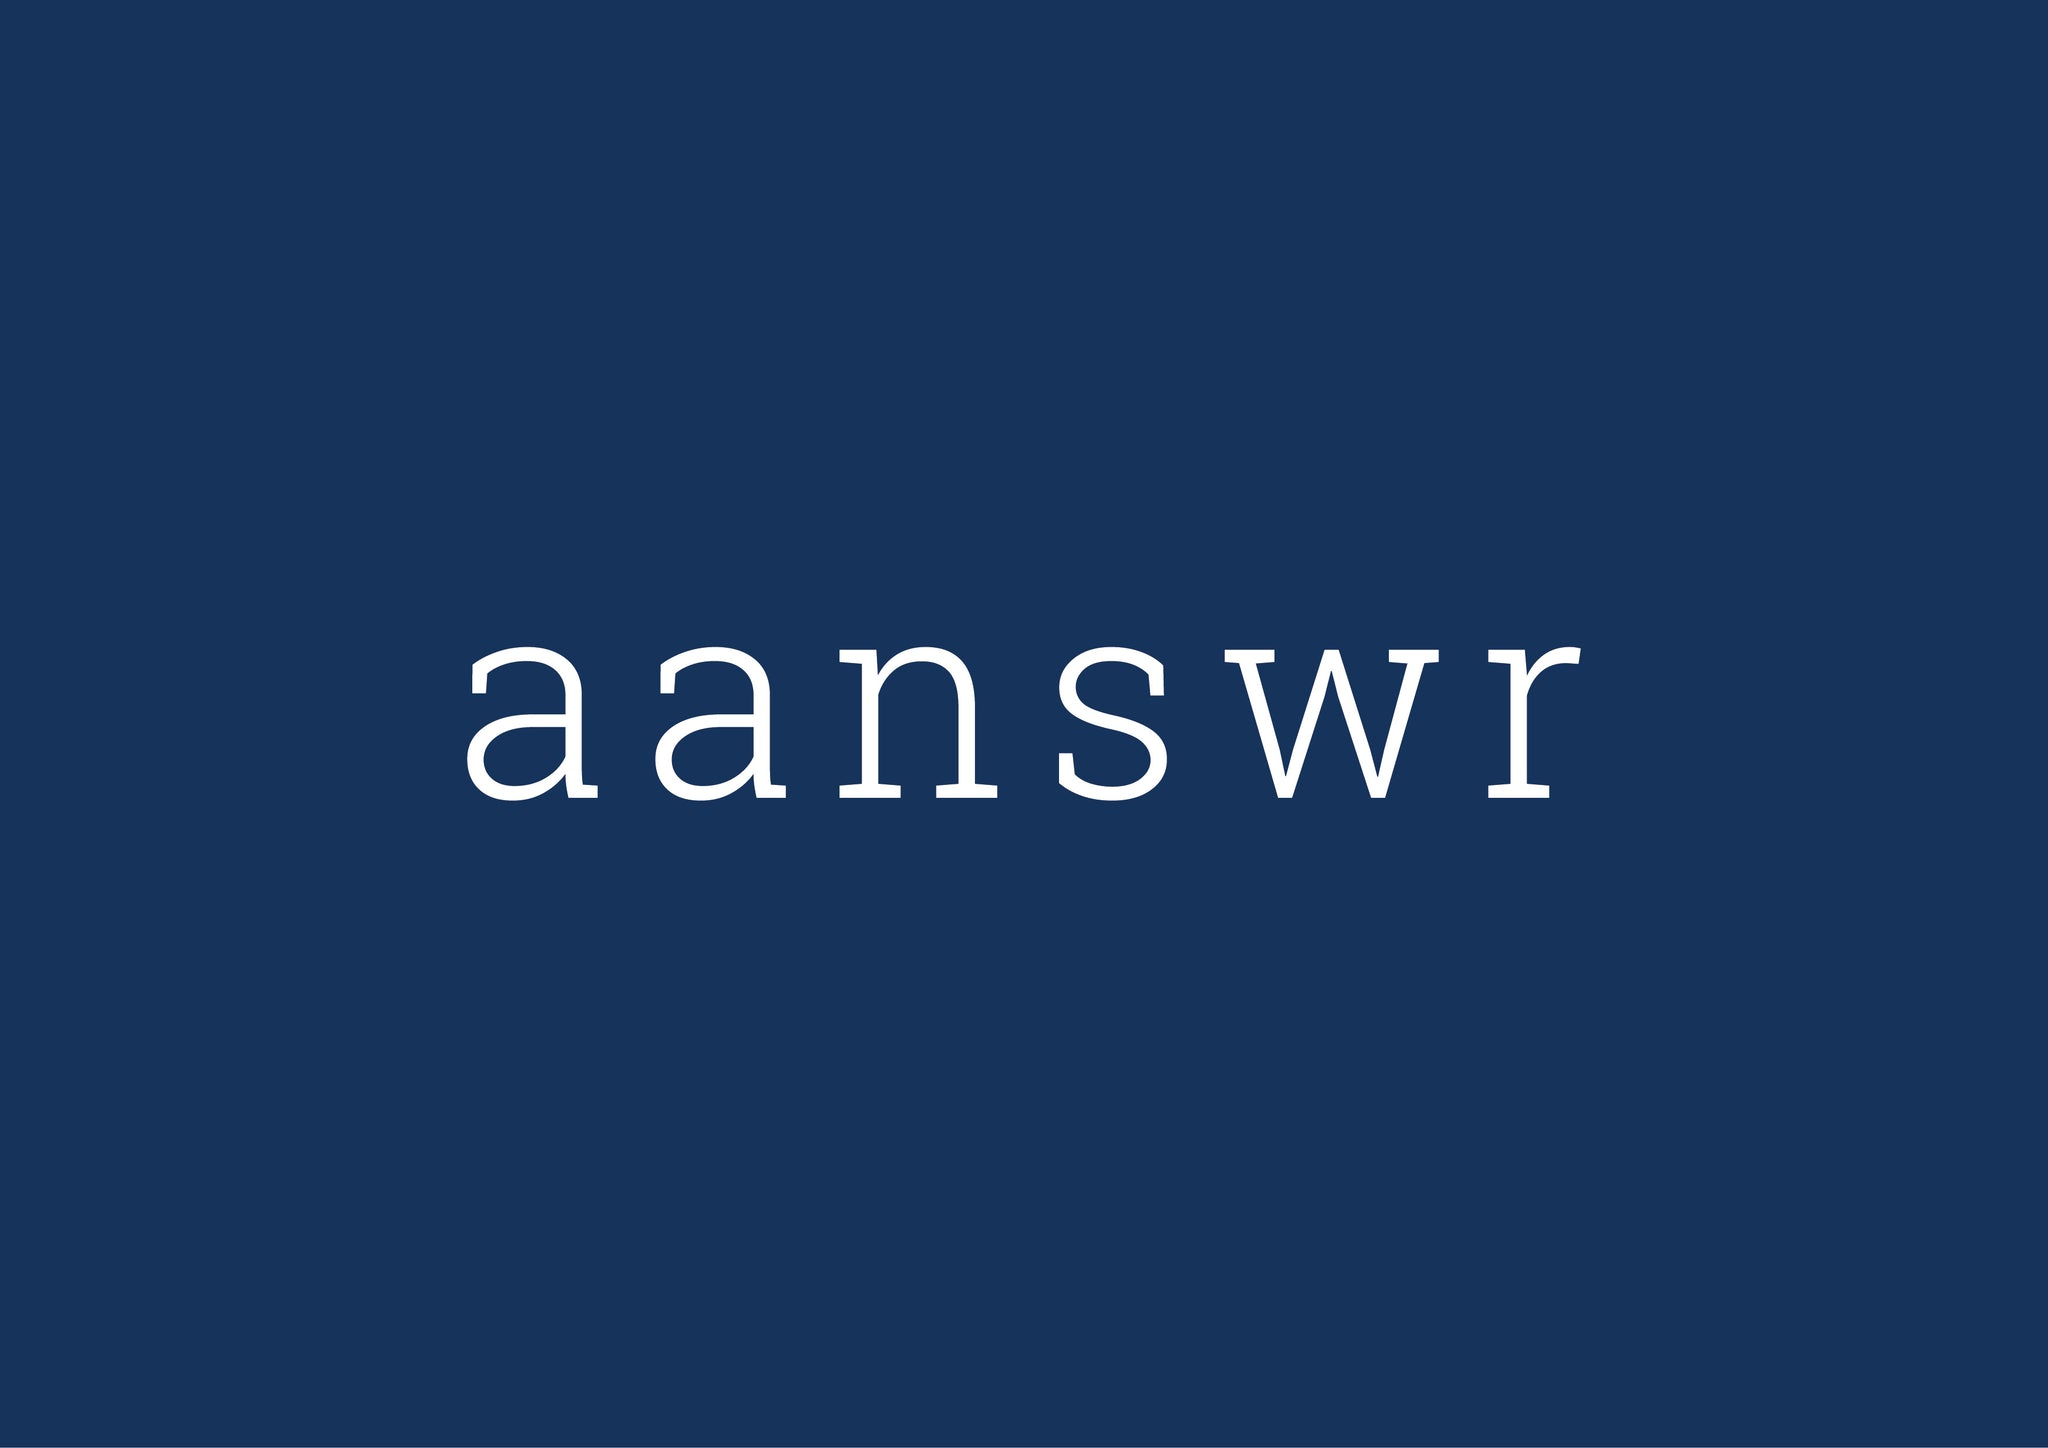 aanswr Gift Card